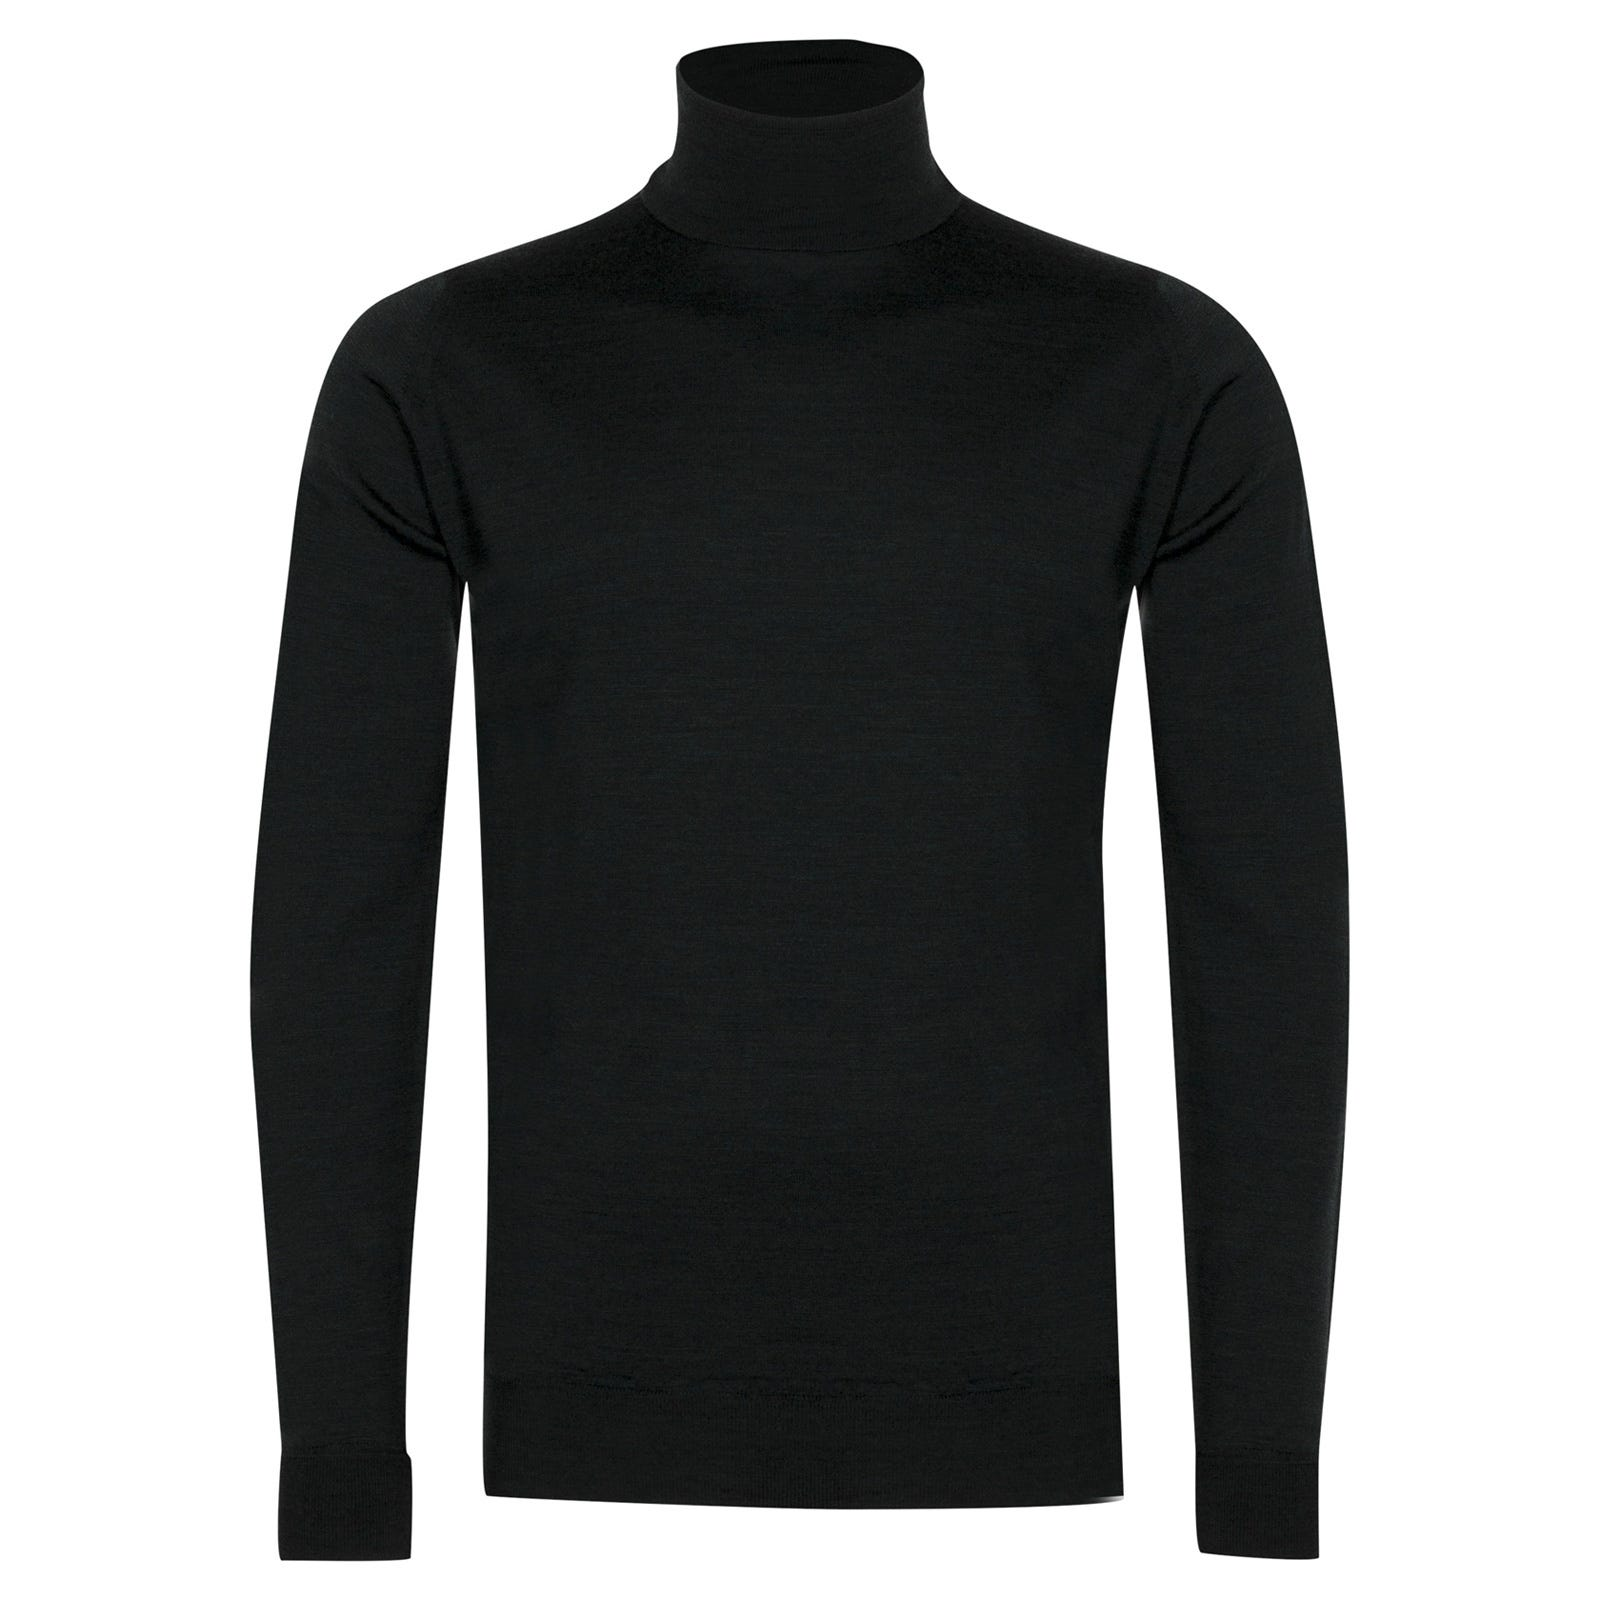 John Smedley richards Merino Wool Pullover in Racing Green-S